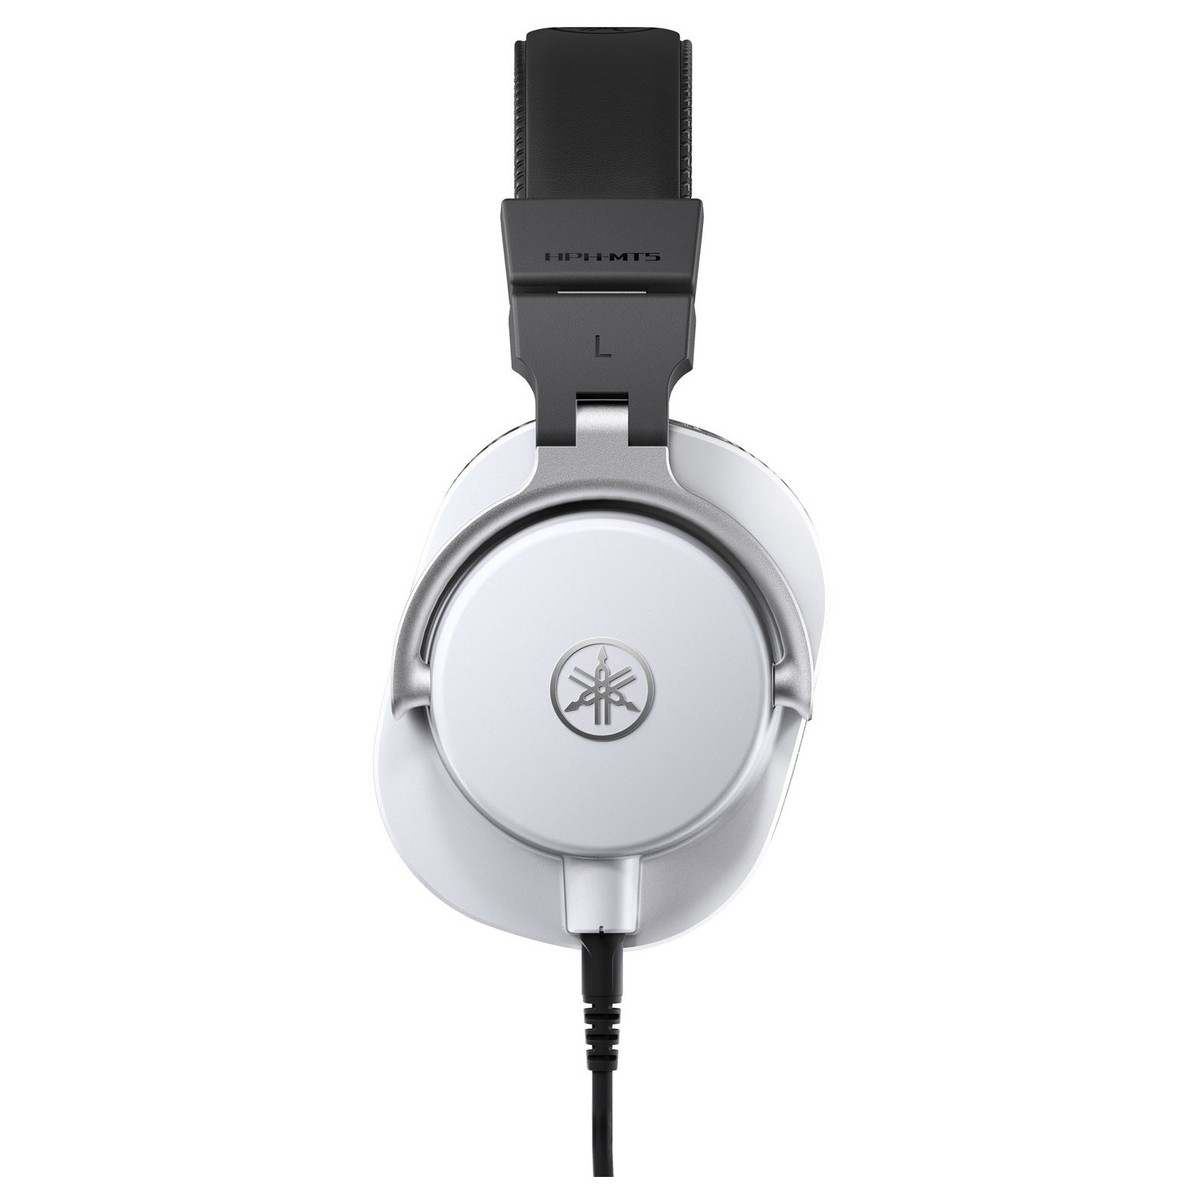 yamaha hph mt5 studio monitor headphones white at. Black Bedroom Furniture Sets. Home Design Ideas